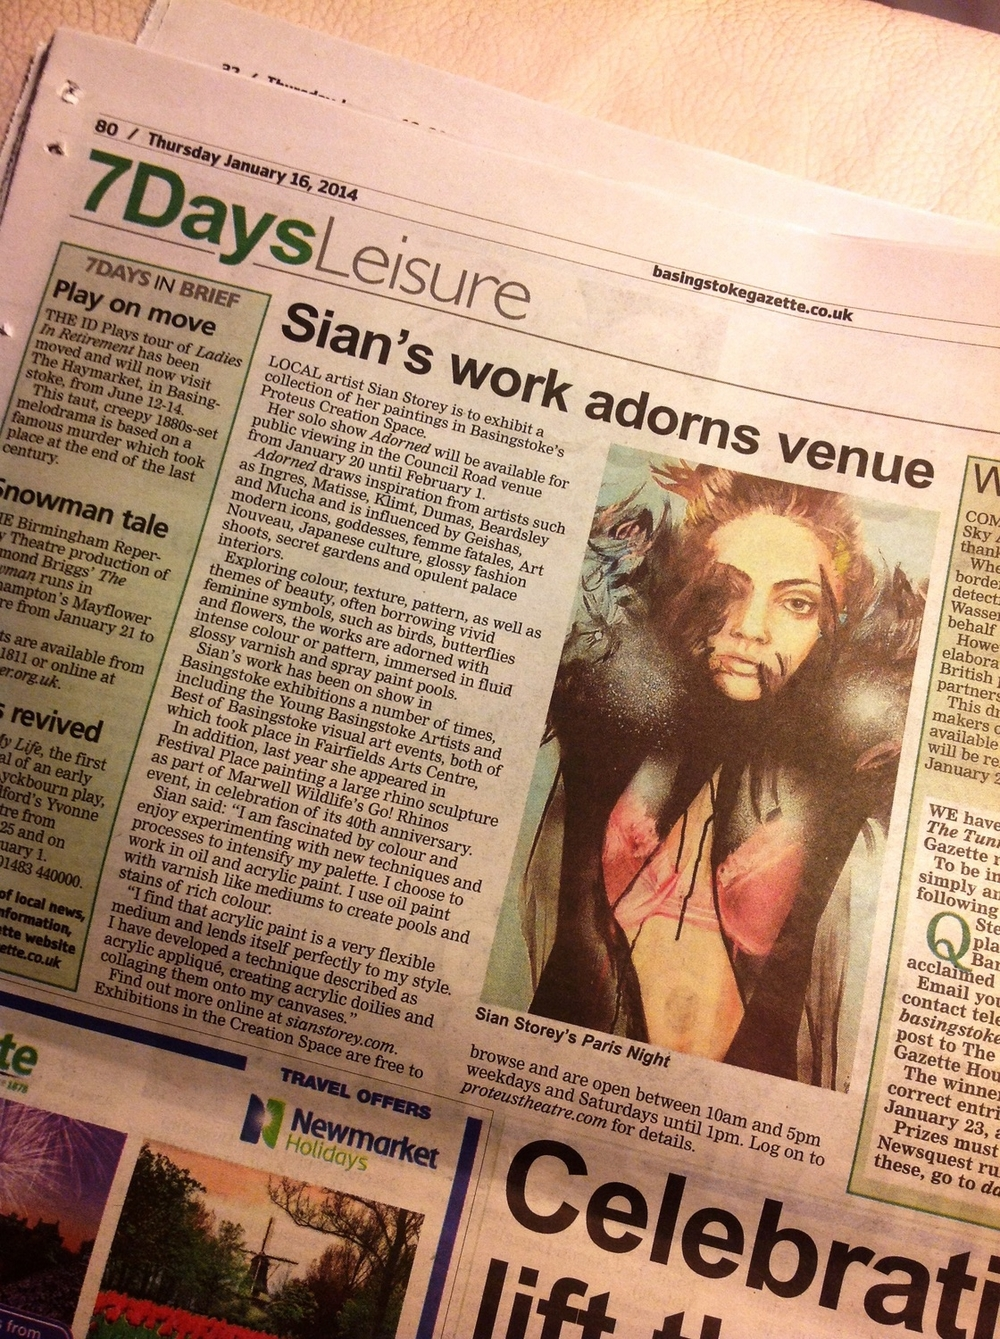 Basingstoke Gazette